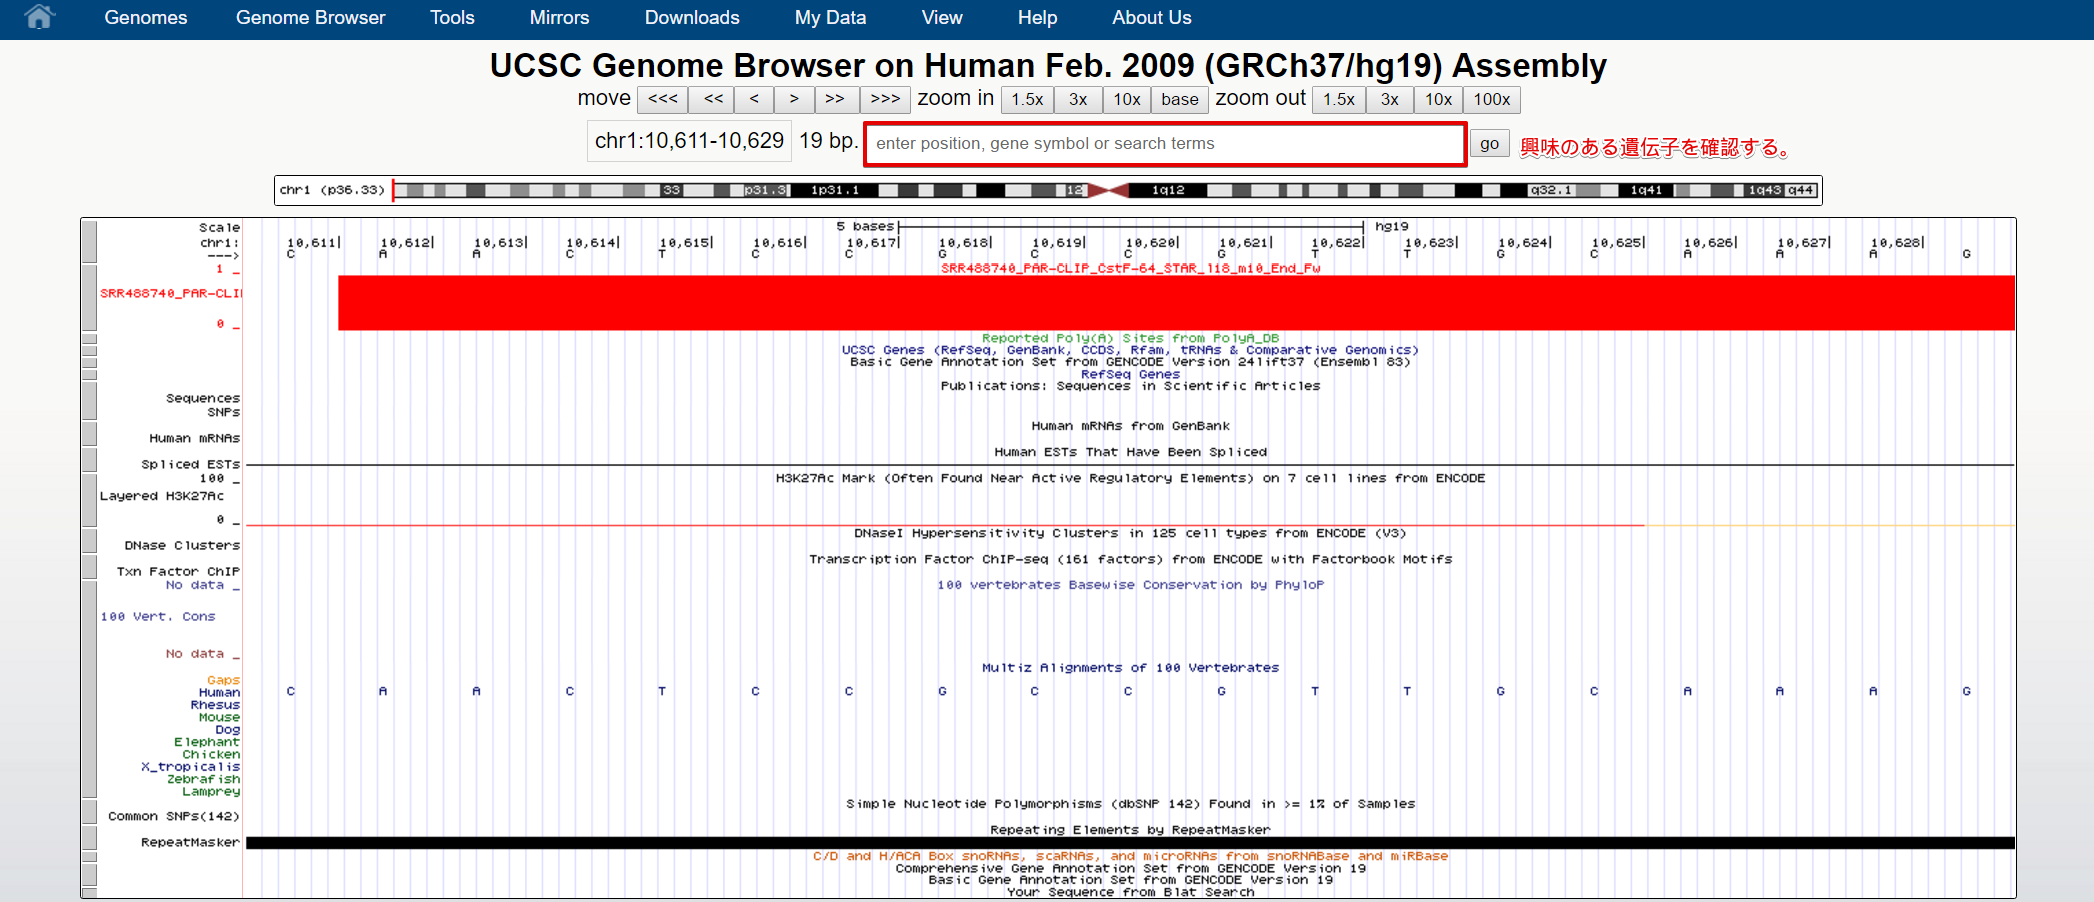 Human chr1_10611-10629 - UCSC Genome Browser v343 - Google Chrome 2017-01-18 17.16.46.png (312.5 kB)